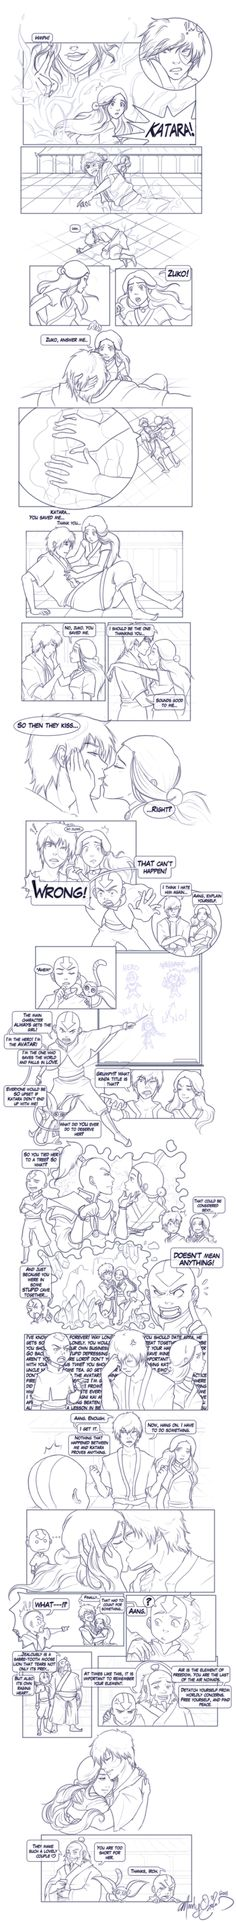 "This is hilarious! The End - Comic by Mandy-Mo.deviantart.com on @deviantART  ""You should date Appa."""